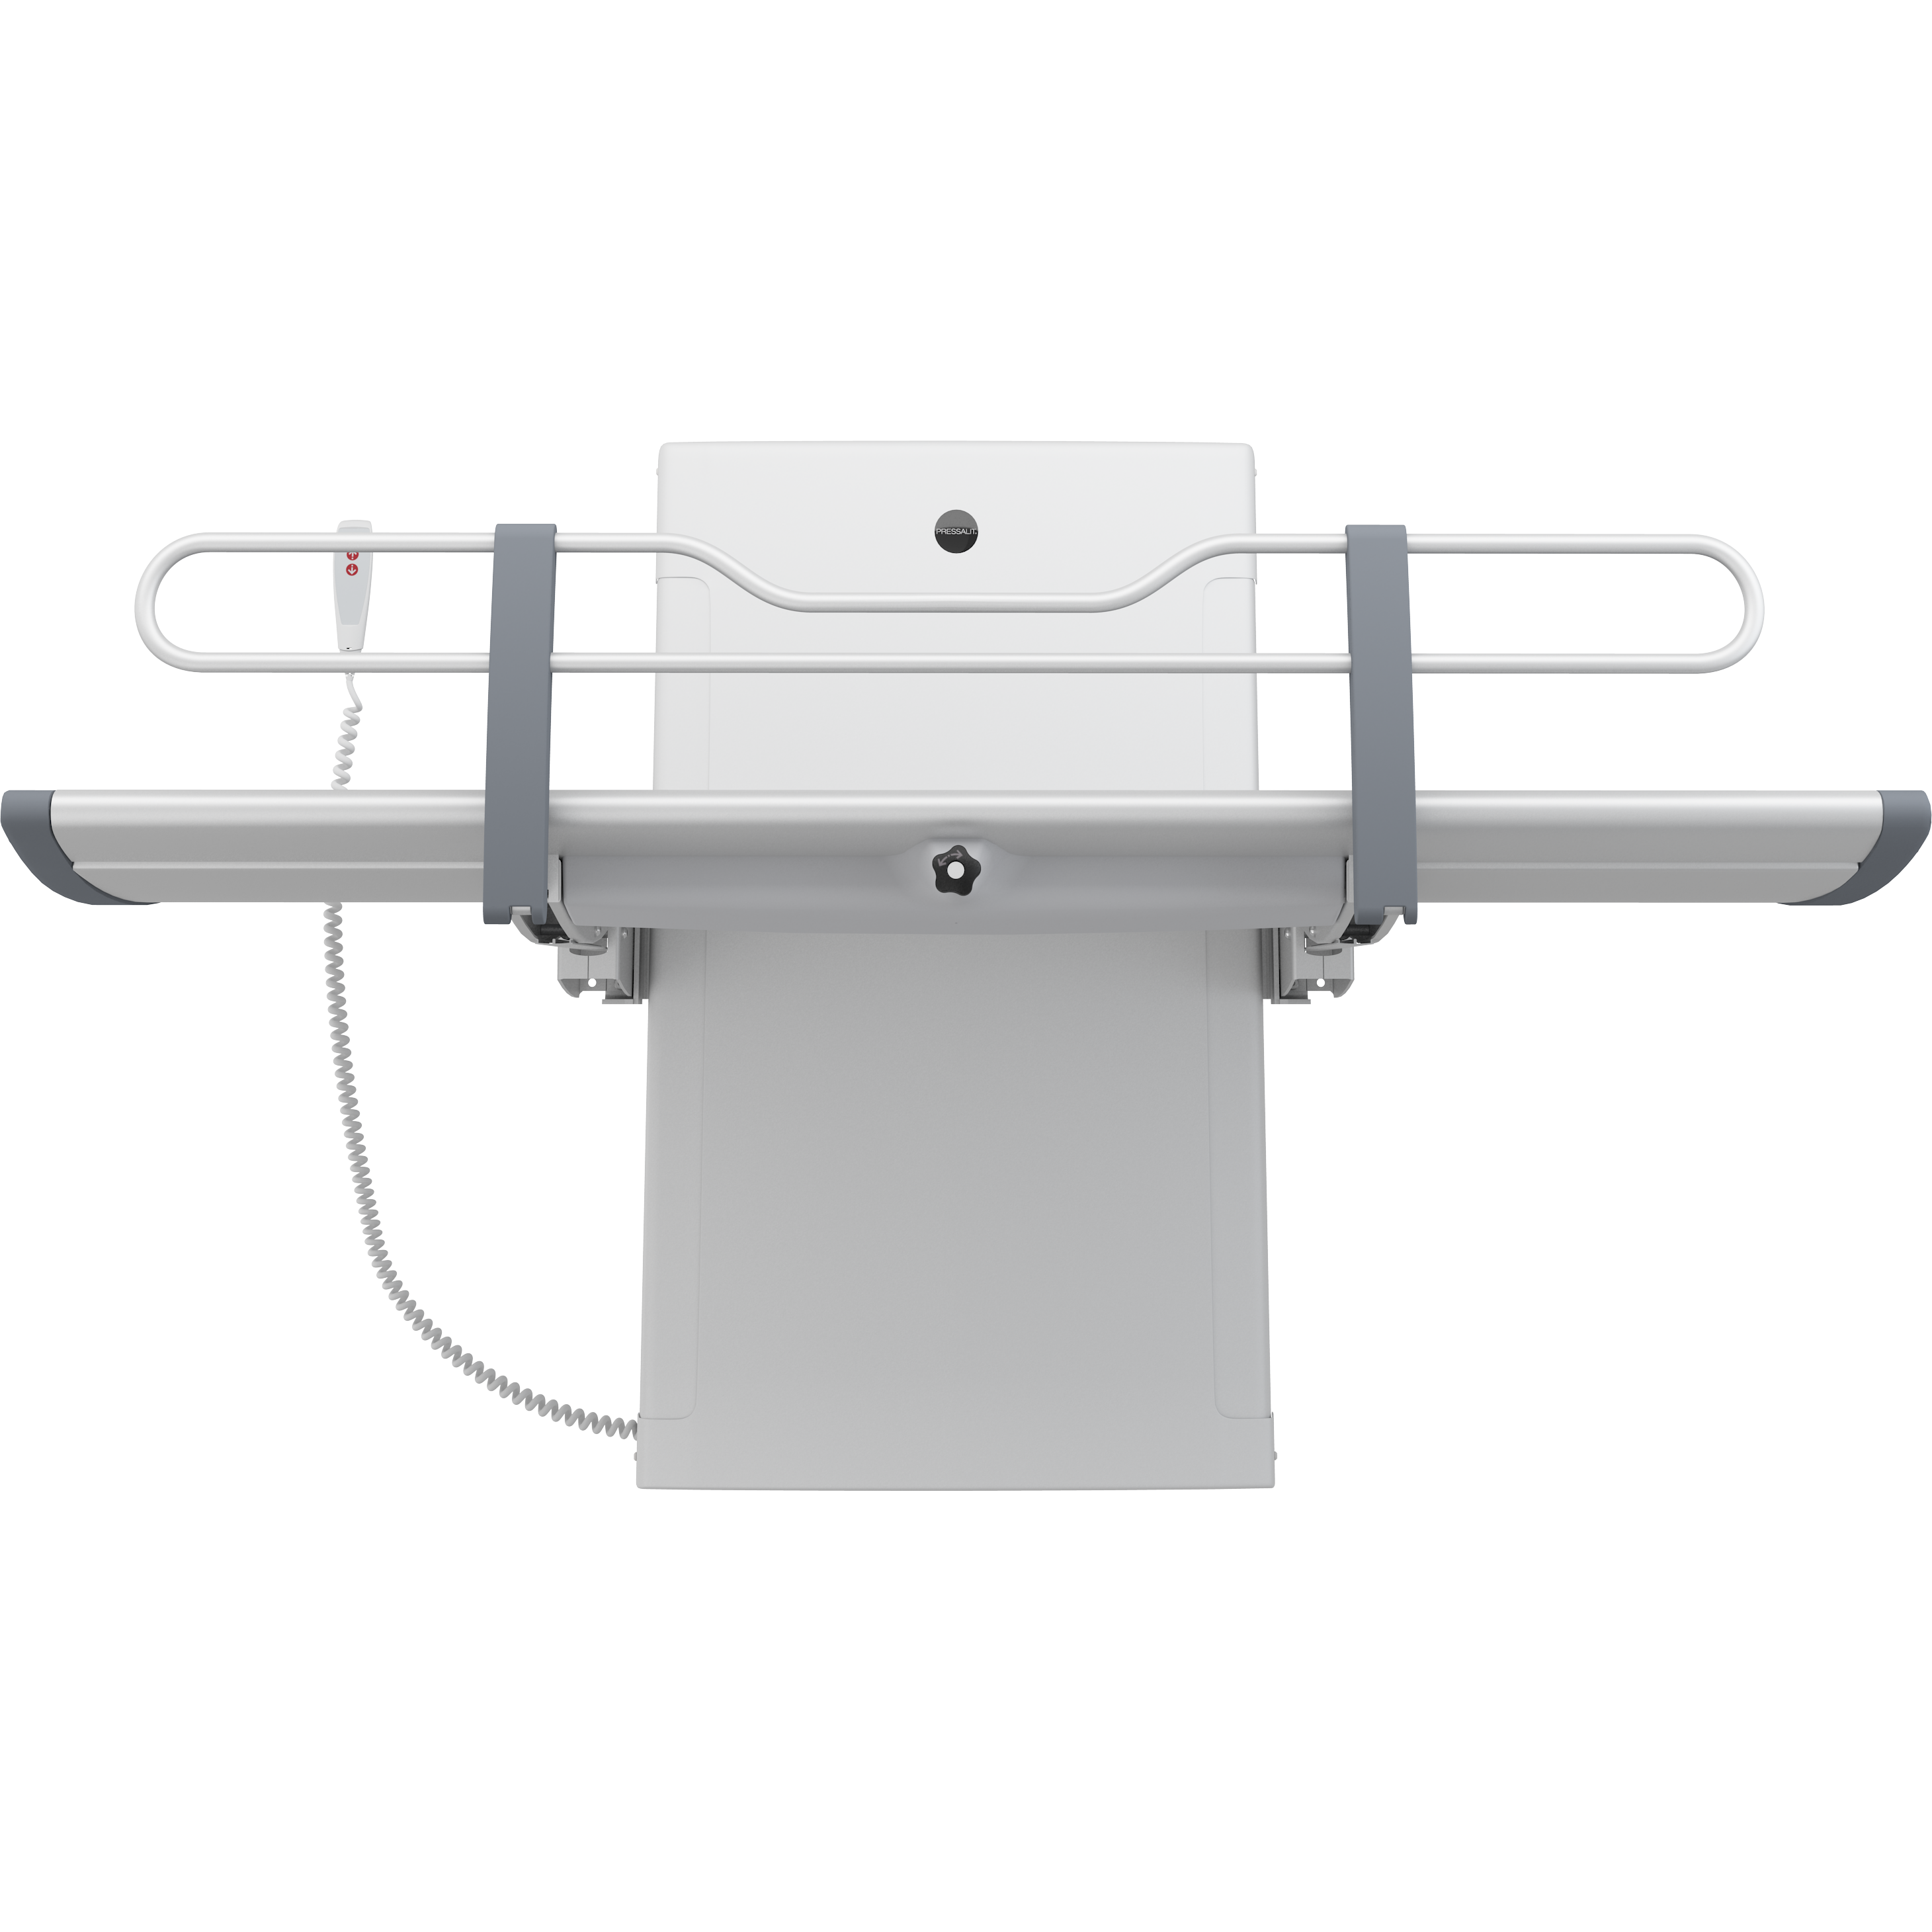 SCT 3000 shower change table, electrically height adjustable